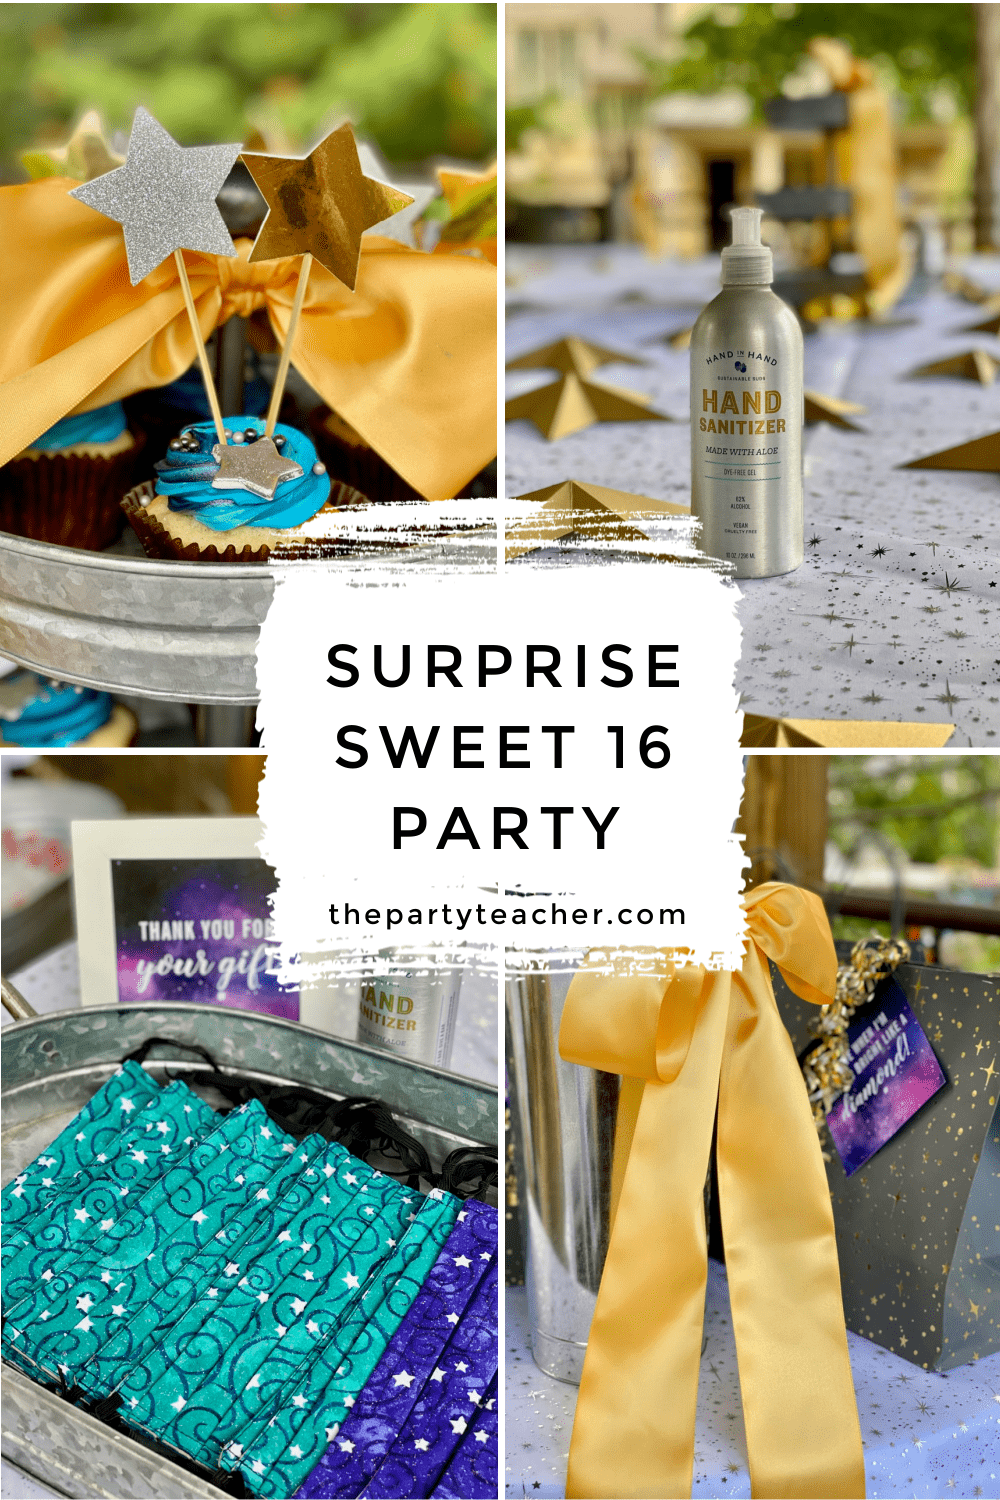 Surprise Sweet 16 Party by The Party Teacher